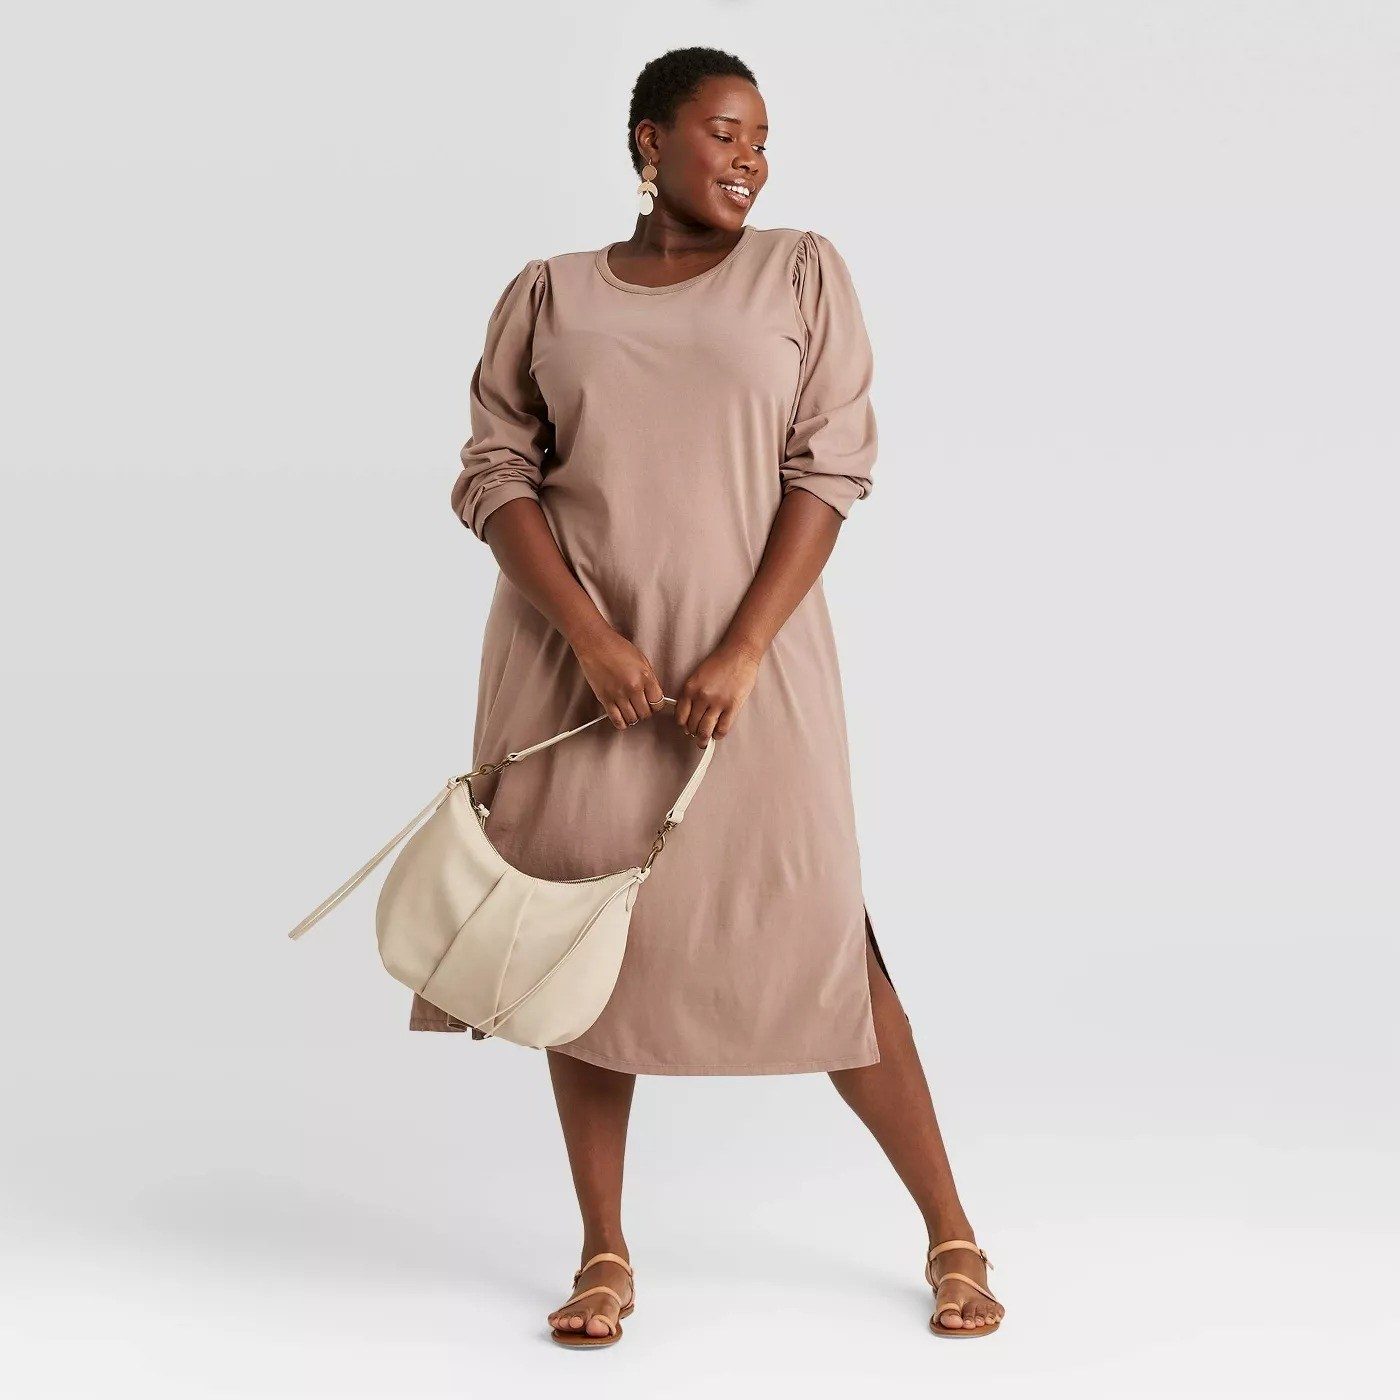 Model wearing light brown dress with puff sleeves, two slits on each side, goes past the knee